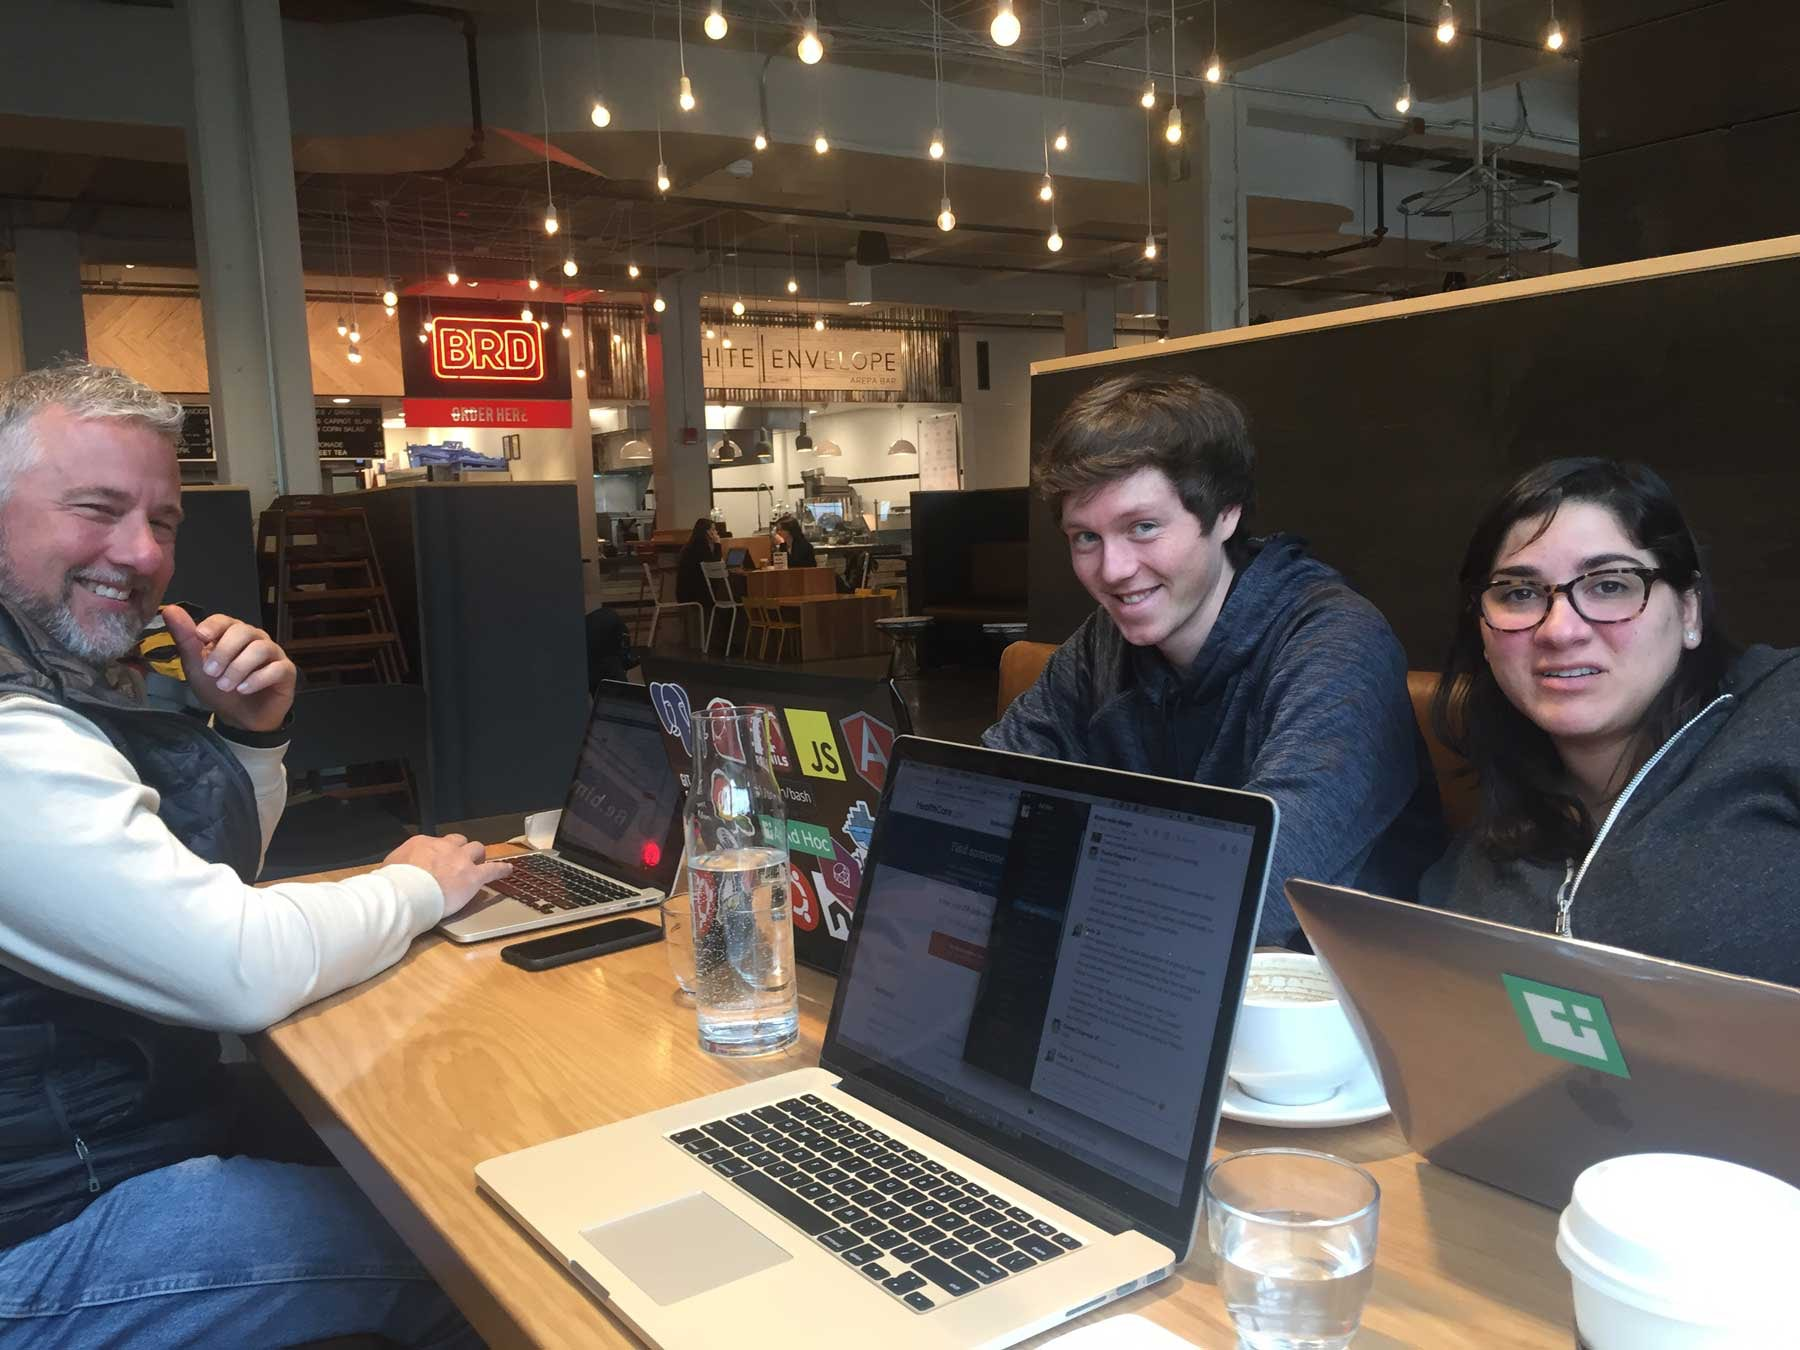 Coworking (with coffee!)